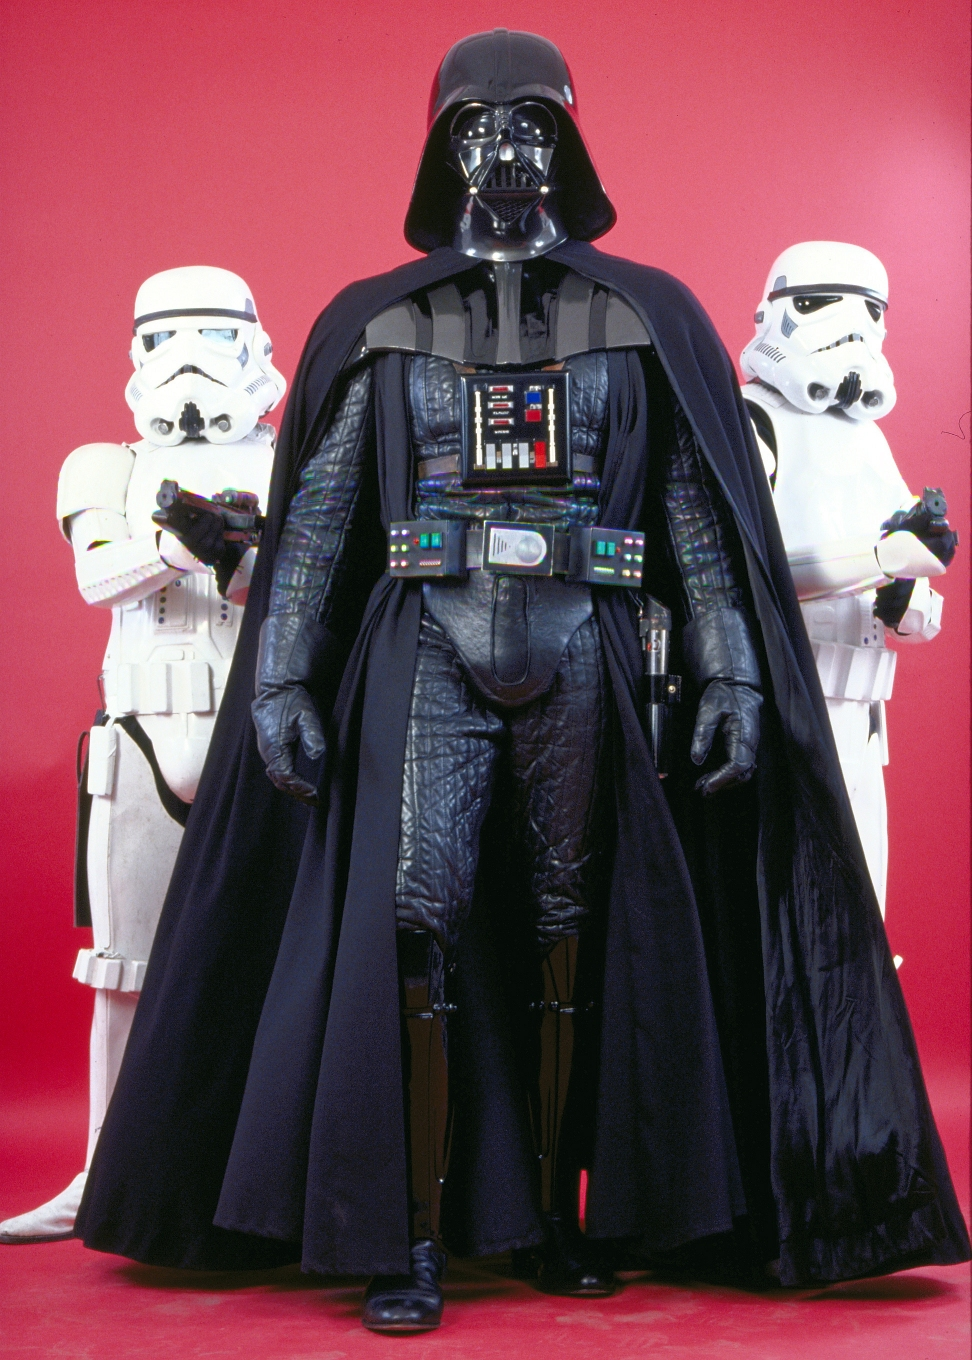 Darth vader sous toutes ses coutures 091026101936202114717427